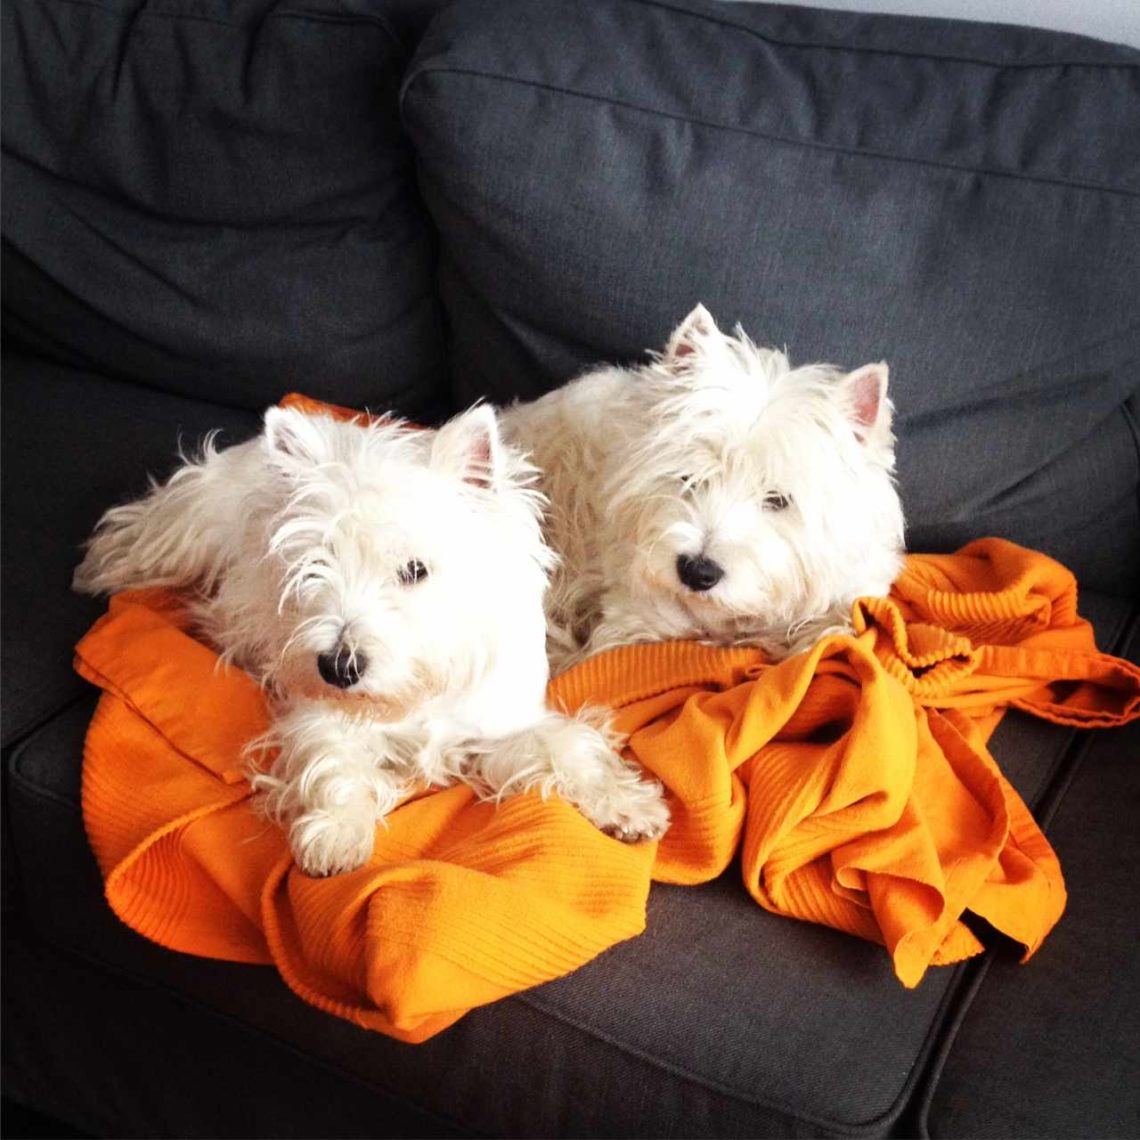 Hodowla west highland white terrier Pan Cogito